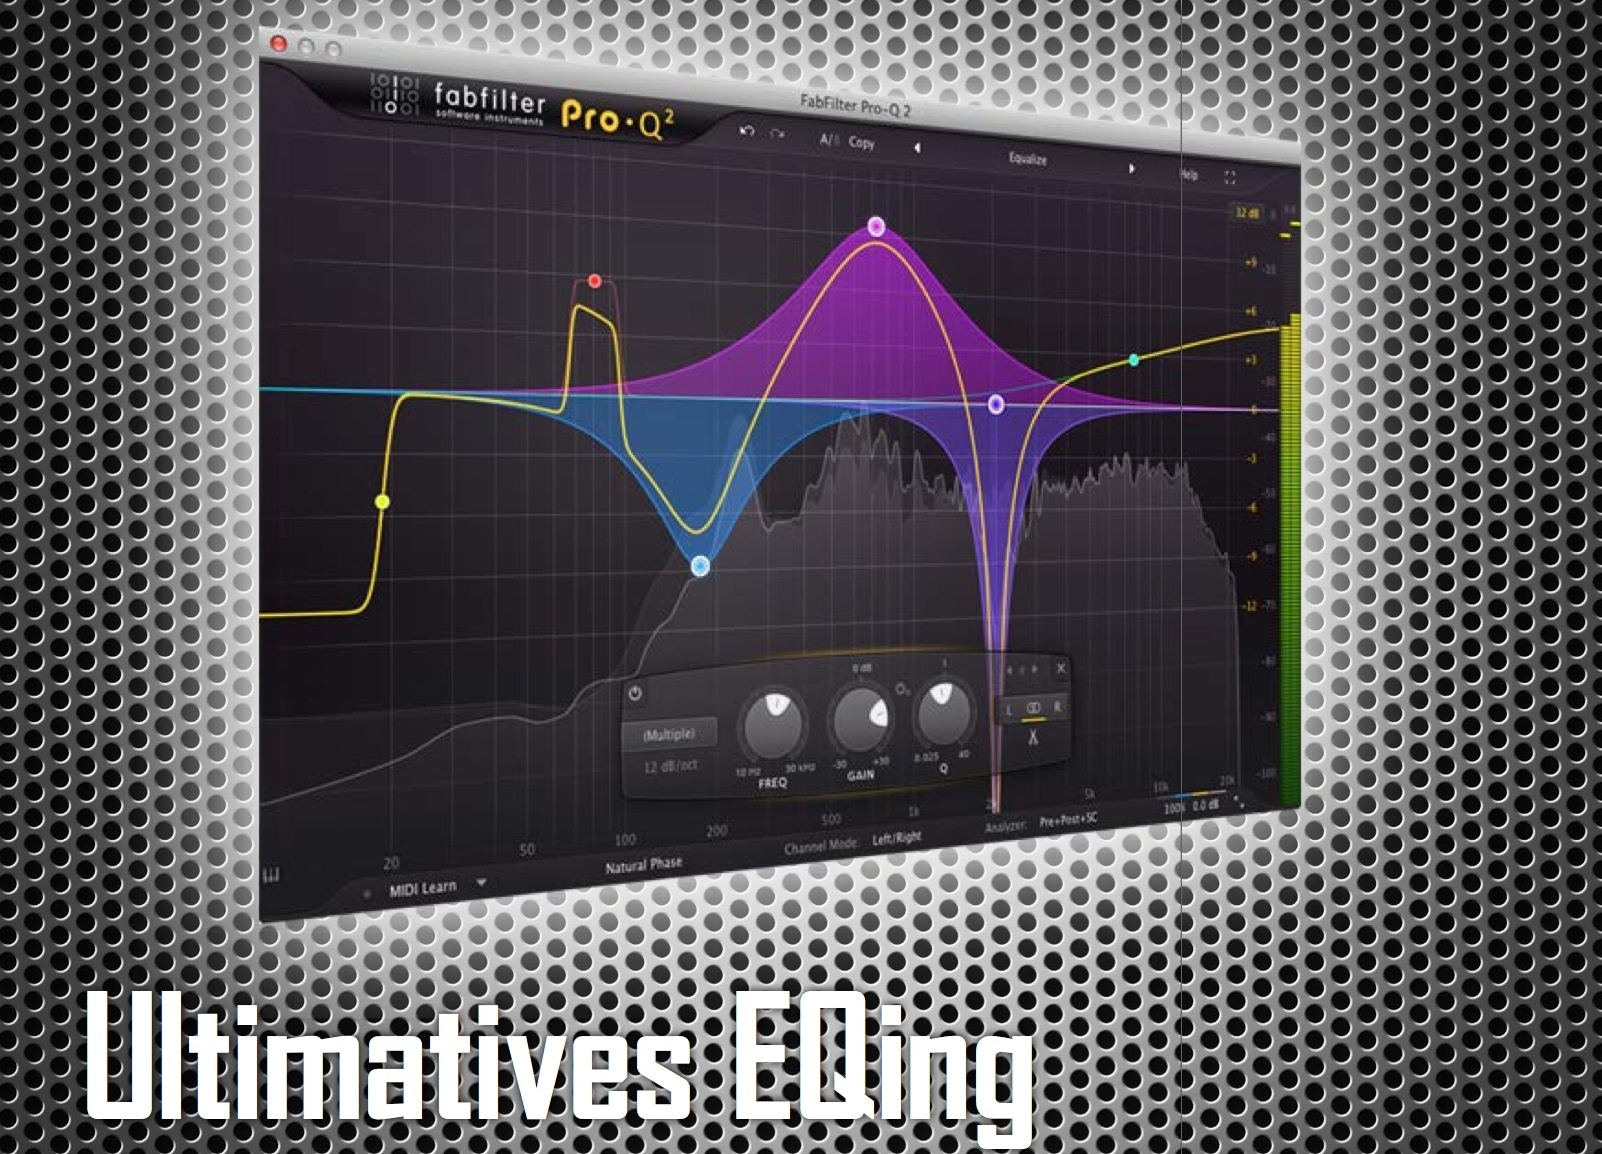 Test Equalizer-Plug-in Fabfilter Pro-Q 2